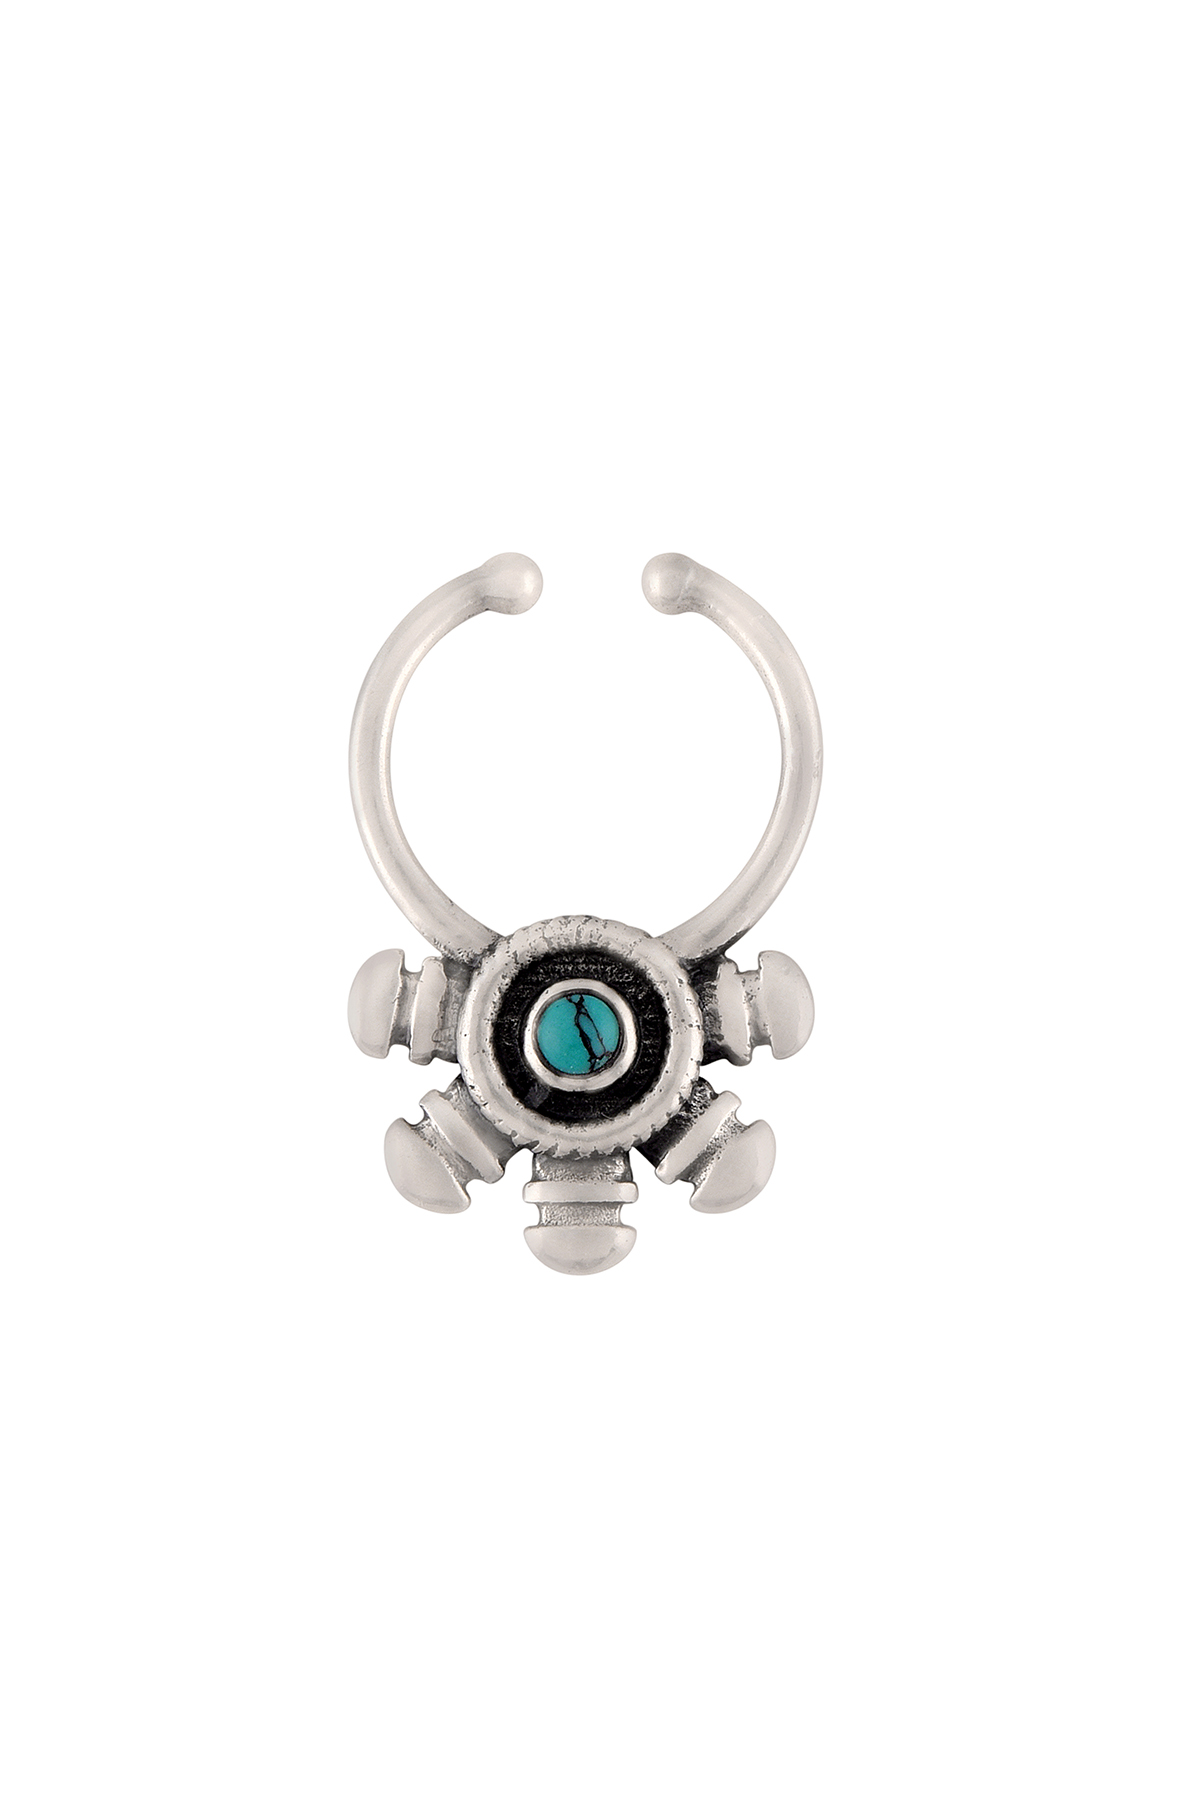 Silver Oxidised Turquoise Studded Embellishment Septum Ring